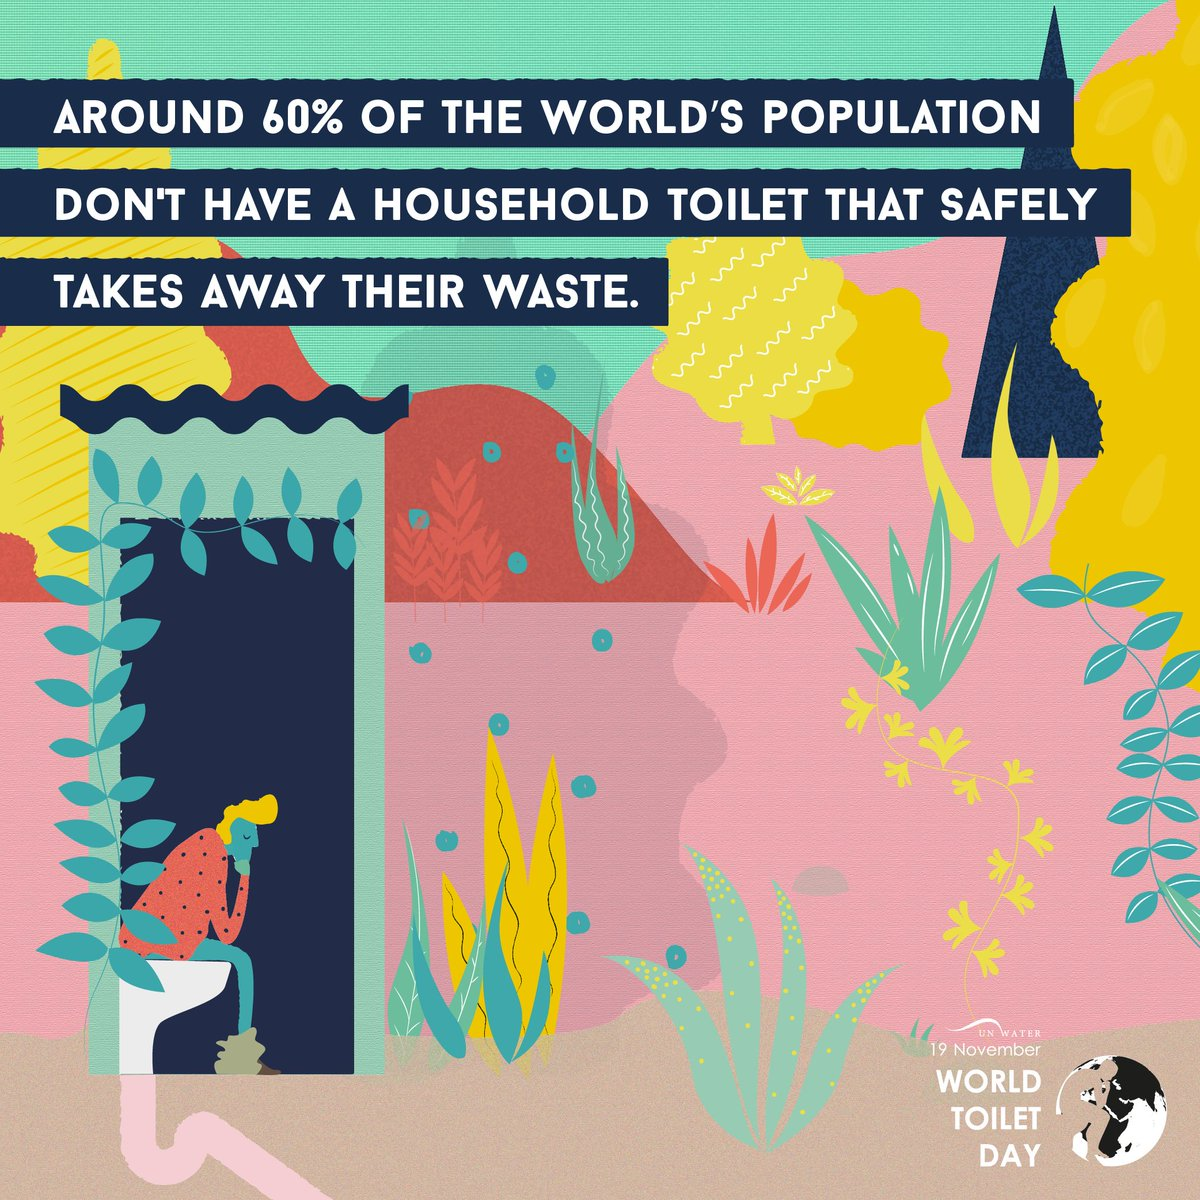 World Toilet Day (@worldtoiletday) | Twitter